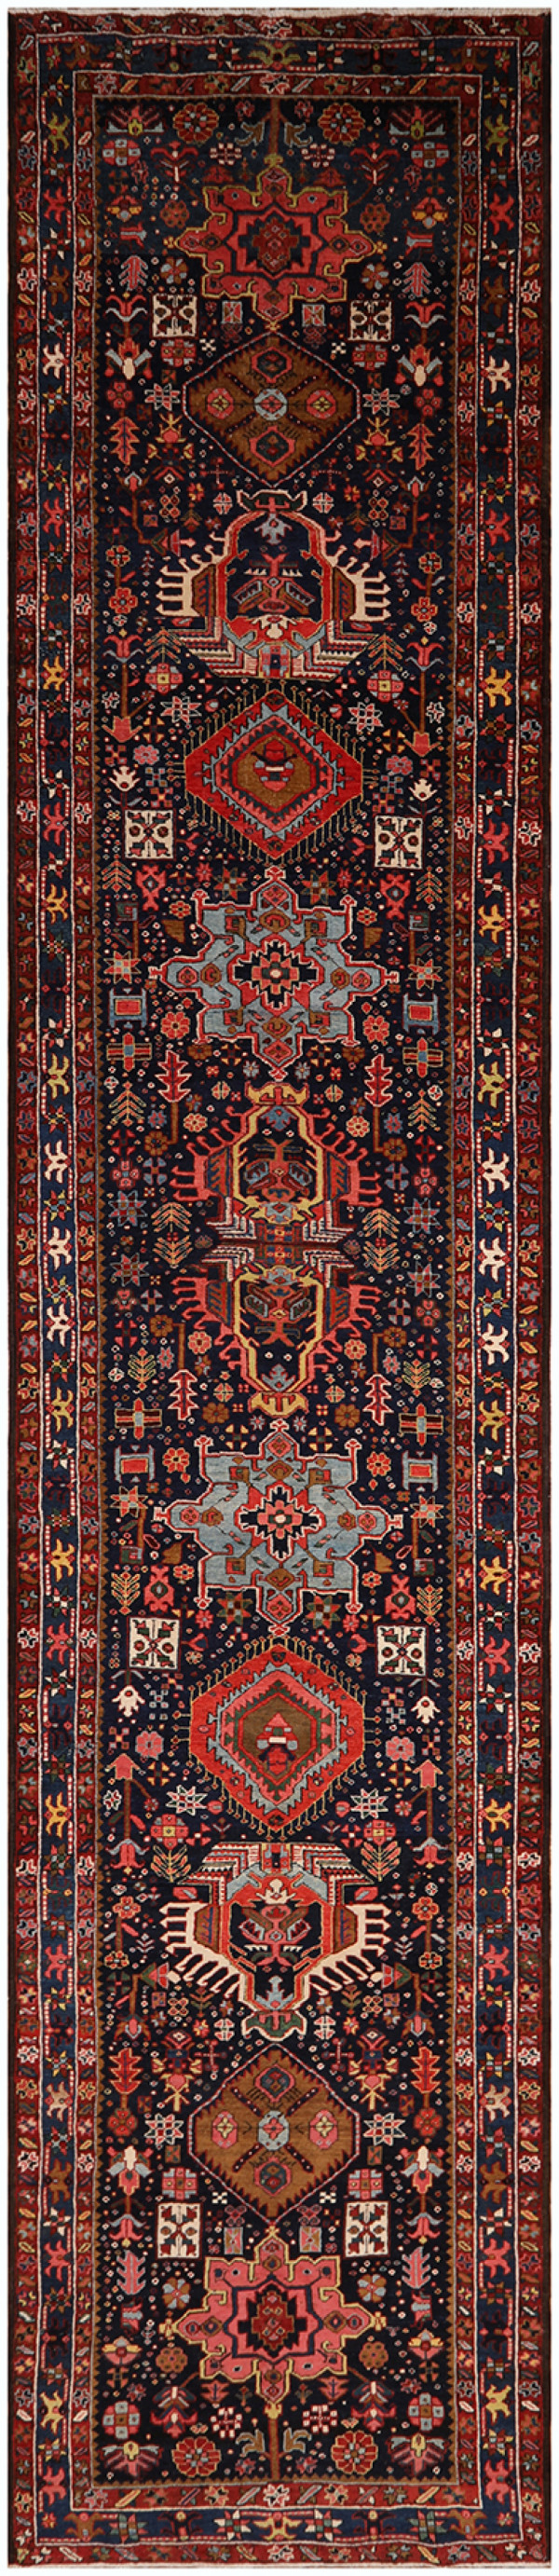 #51419 Heris Antique Persian Rug